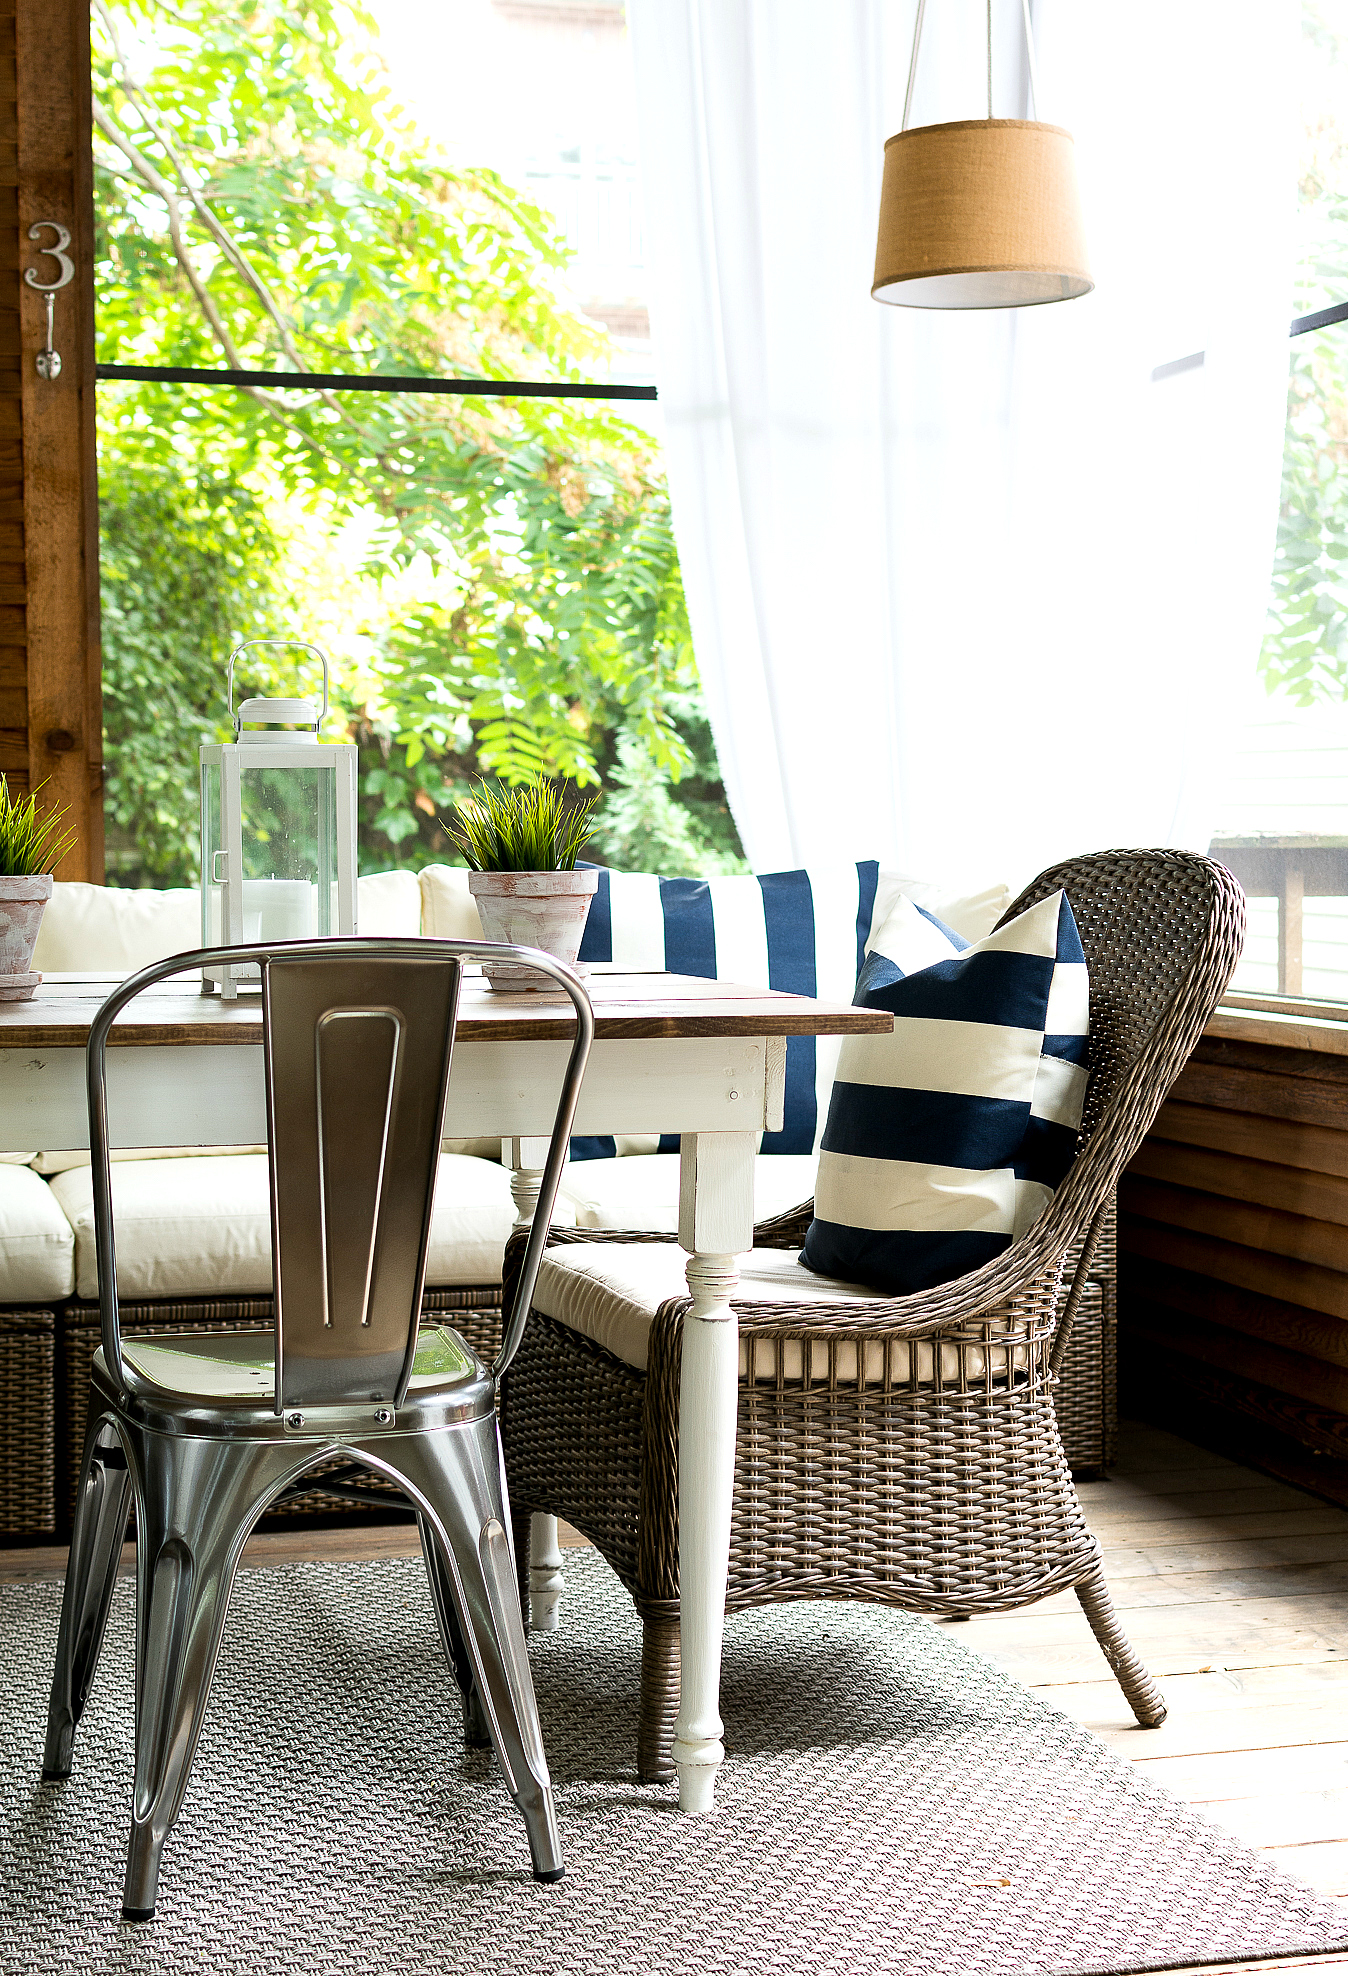 Wicker Chairs with Farmhouse Table